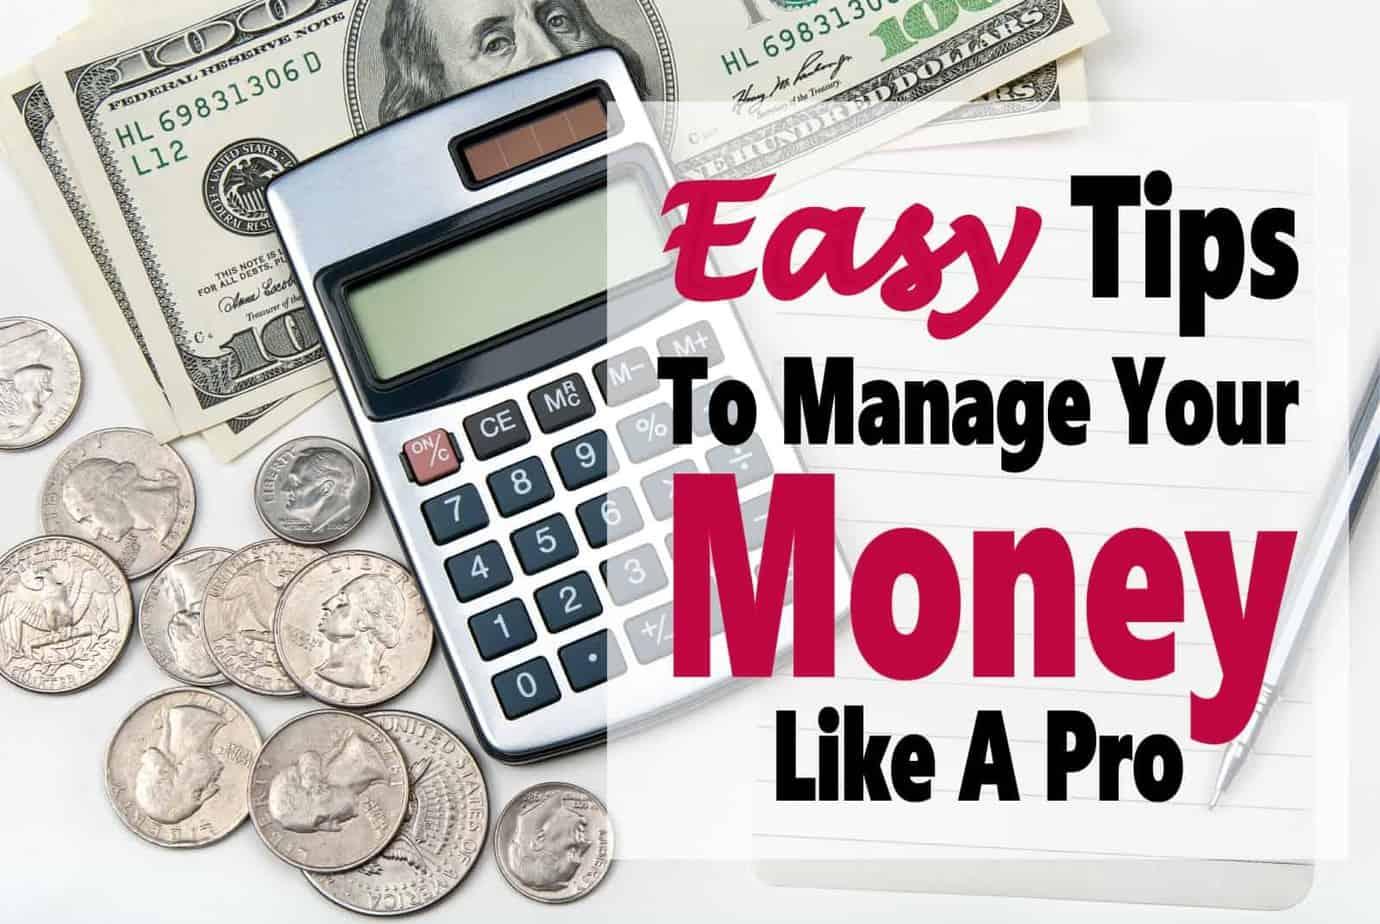 5 Easy Tips To Manage Your Money Like A Pro ~ We all have to learn to manage our money if we want to save money, stay on budget & get out of debt. Luckily it really isn't as difficult as it seems. Let me share with you 5 tips that will help you manage your money like a pro!! money | budget | debt | finance | save money | debt free #money #finance #debt #debtfree #budget